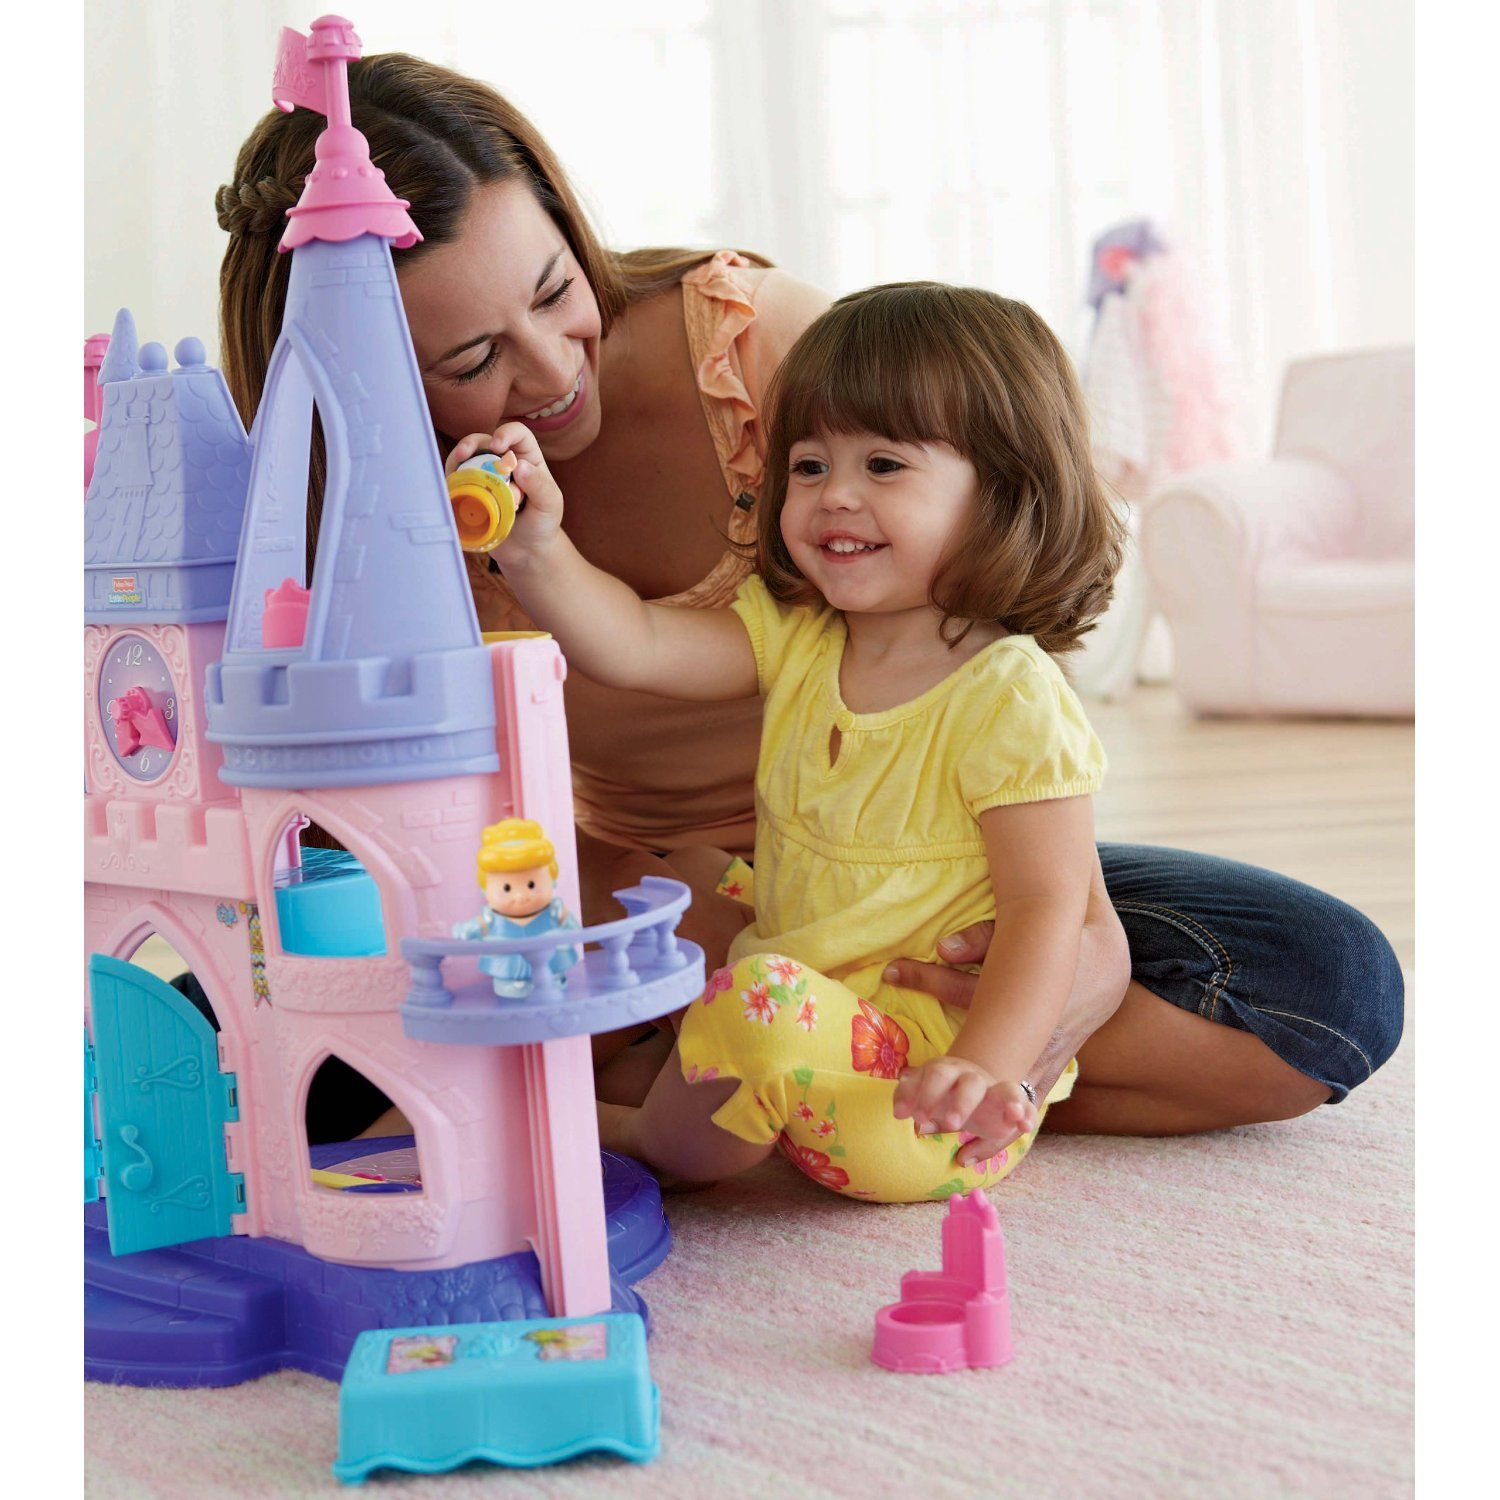 Nearly all little girls love castles princesses and playing make